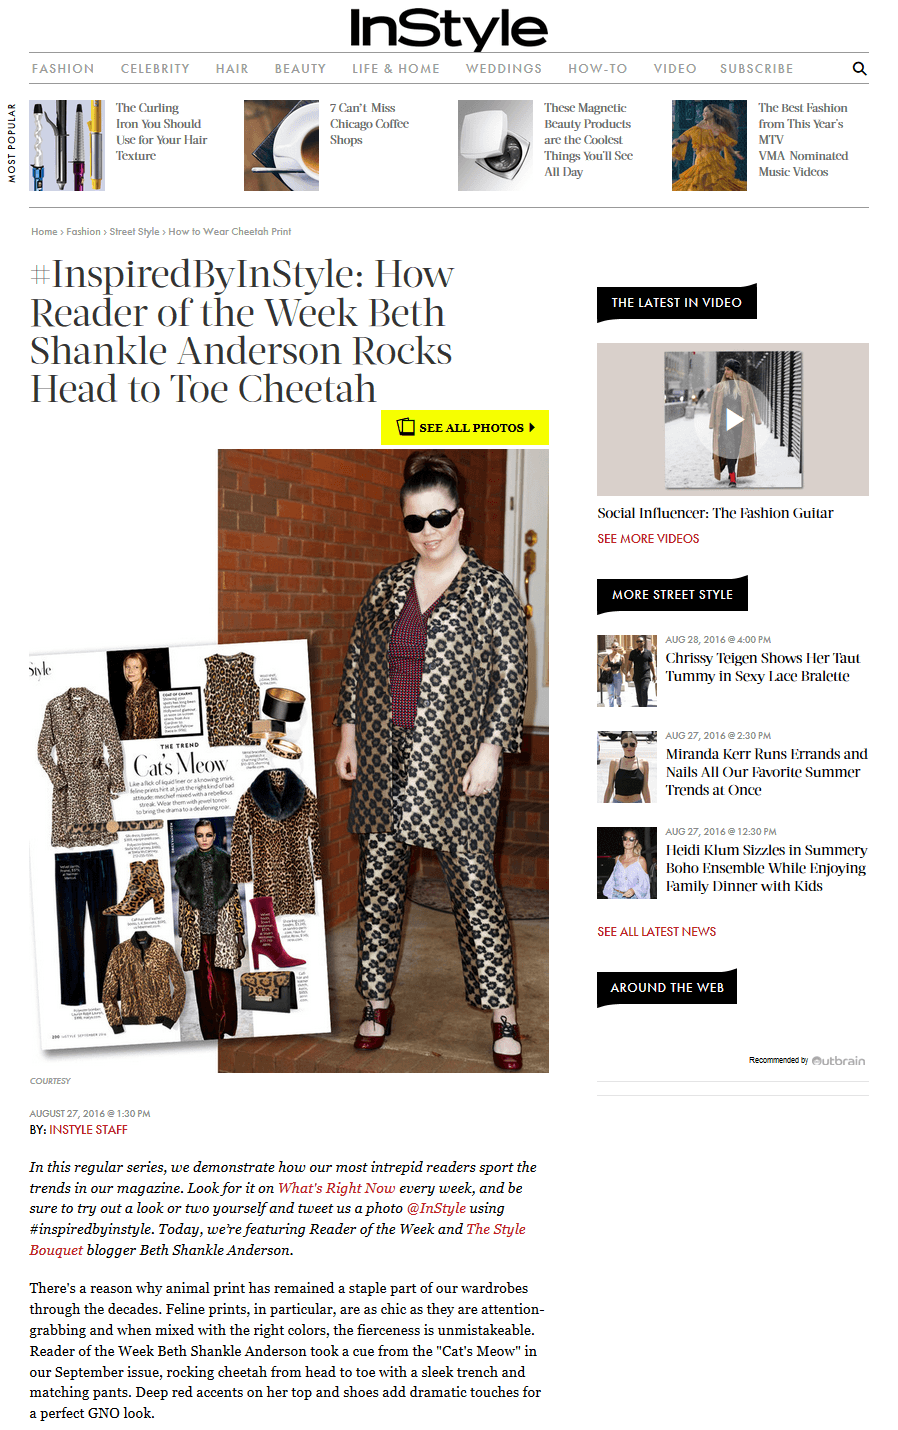 InStyle Magazine - Inspired by Instyle Feature